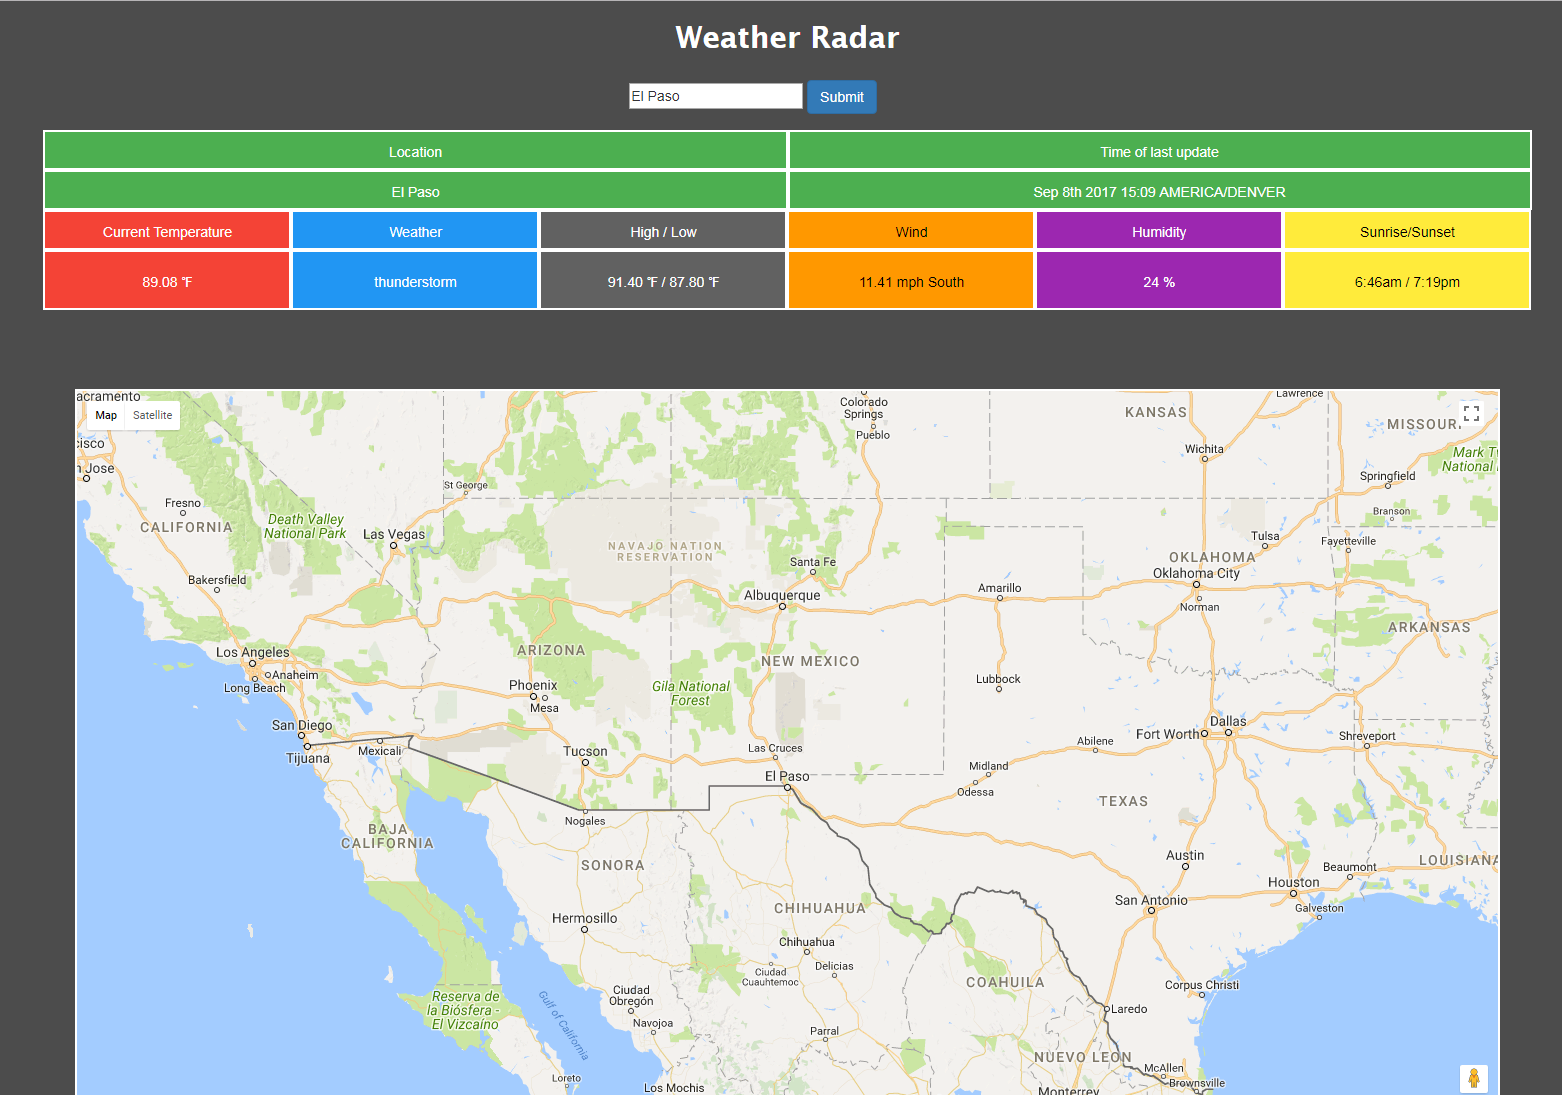 Thumbnail of weather-radar page.